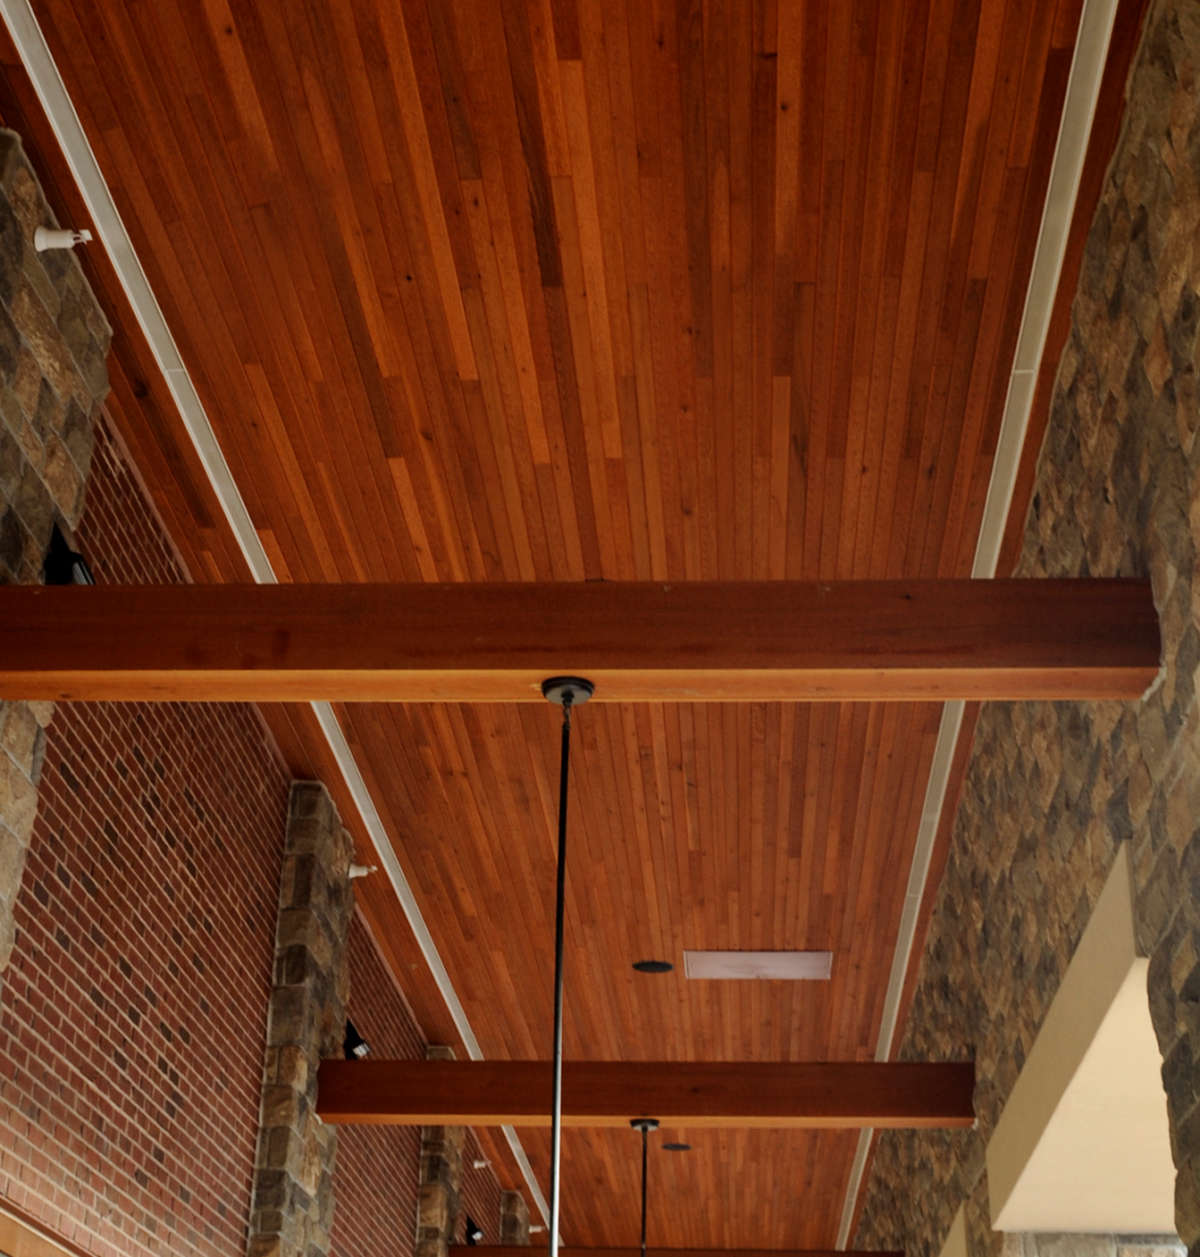 1x4 T&G Cedar Ceiling Soffit with large cedar beam accents